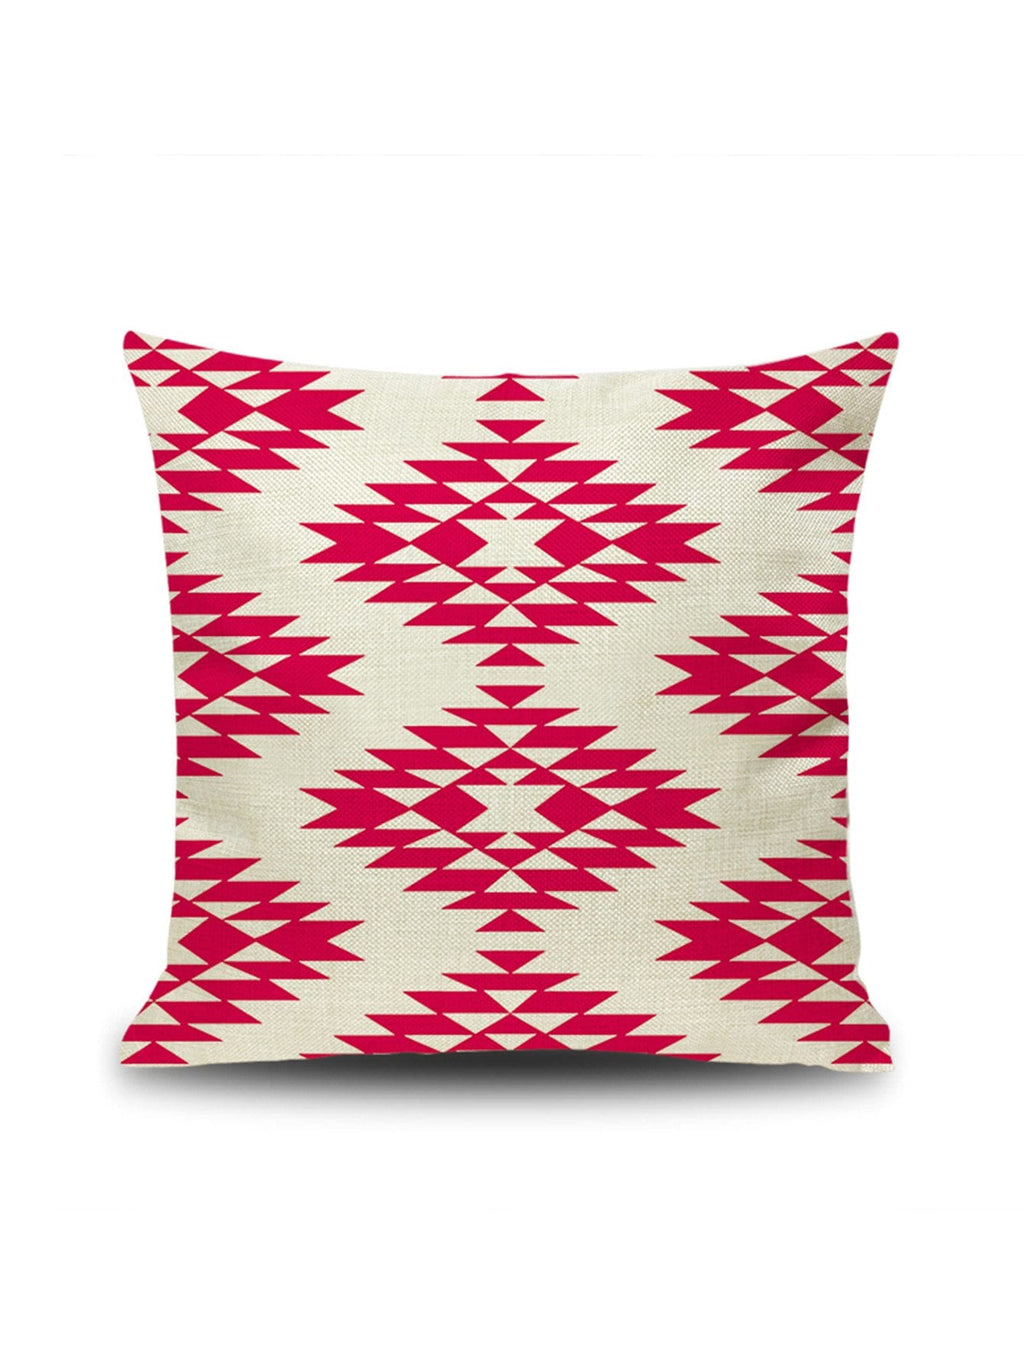 Hot Pink Geometric Cushion Cover